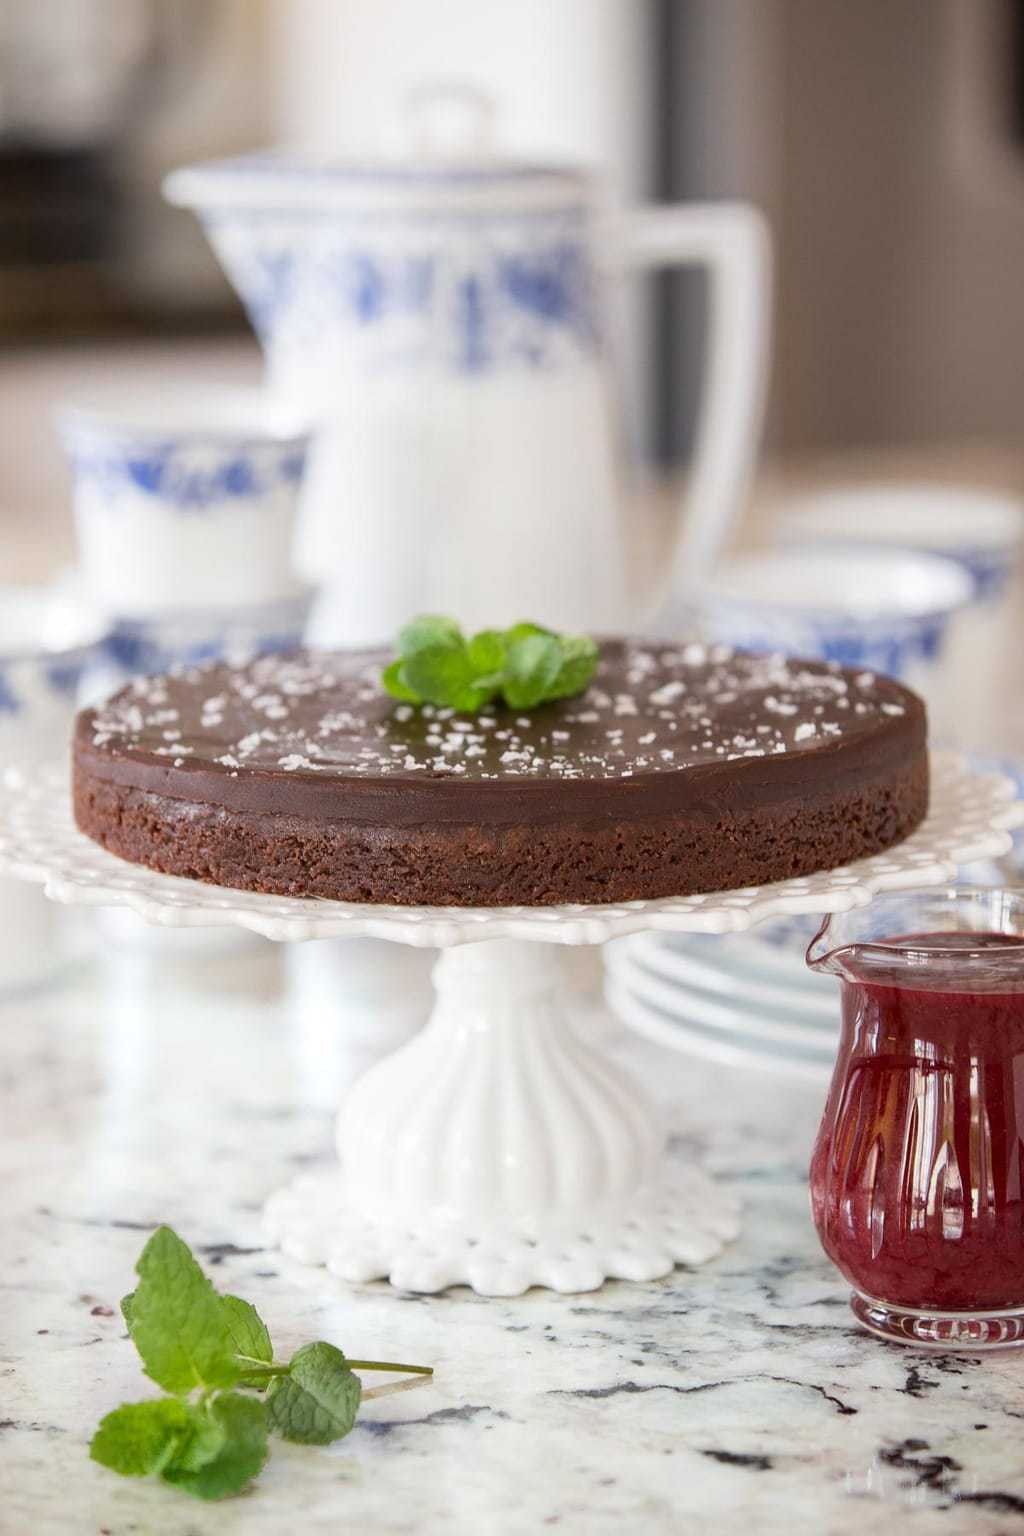 Vertical photo of a Swedish Chocolate Sticky Cake on a white cake stand with a small glass cruet of raspberry sauce nearby.